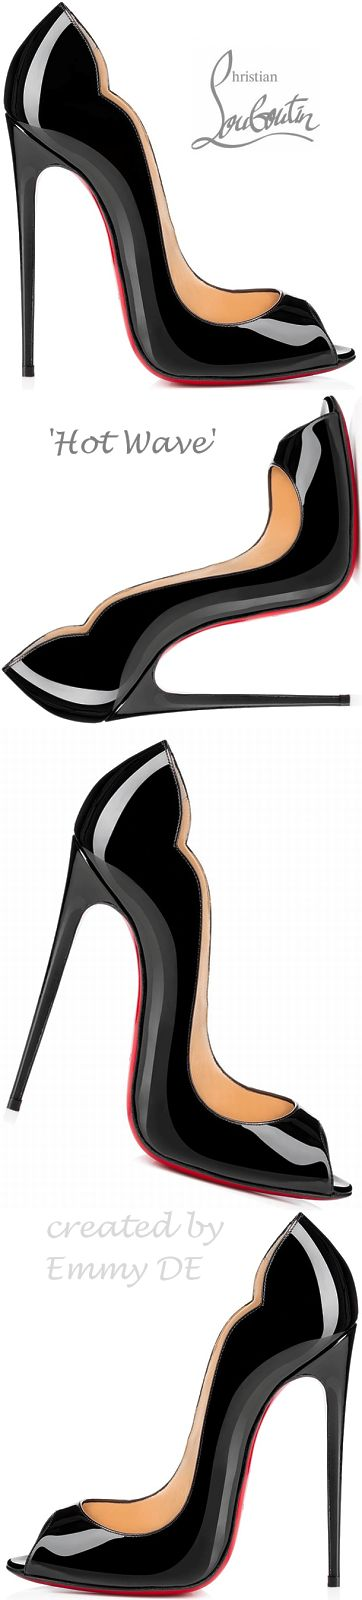 Christian Louboutin Hot Wave Spring 2015 | The House of Beccaria# Mens New Years Eve Outfit